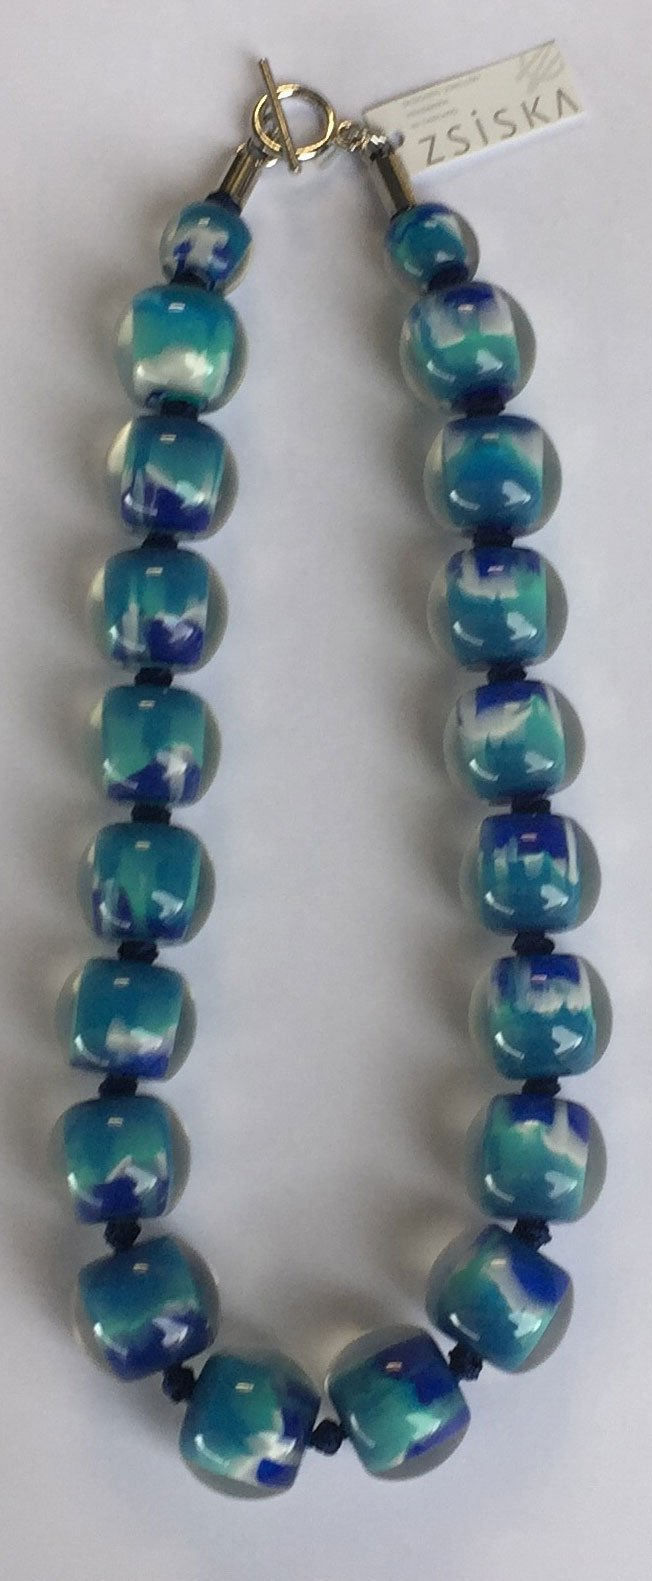 4010103MP11Q20 Colourful Beads BlueturqMarble MP11 Q20 #